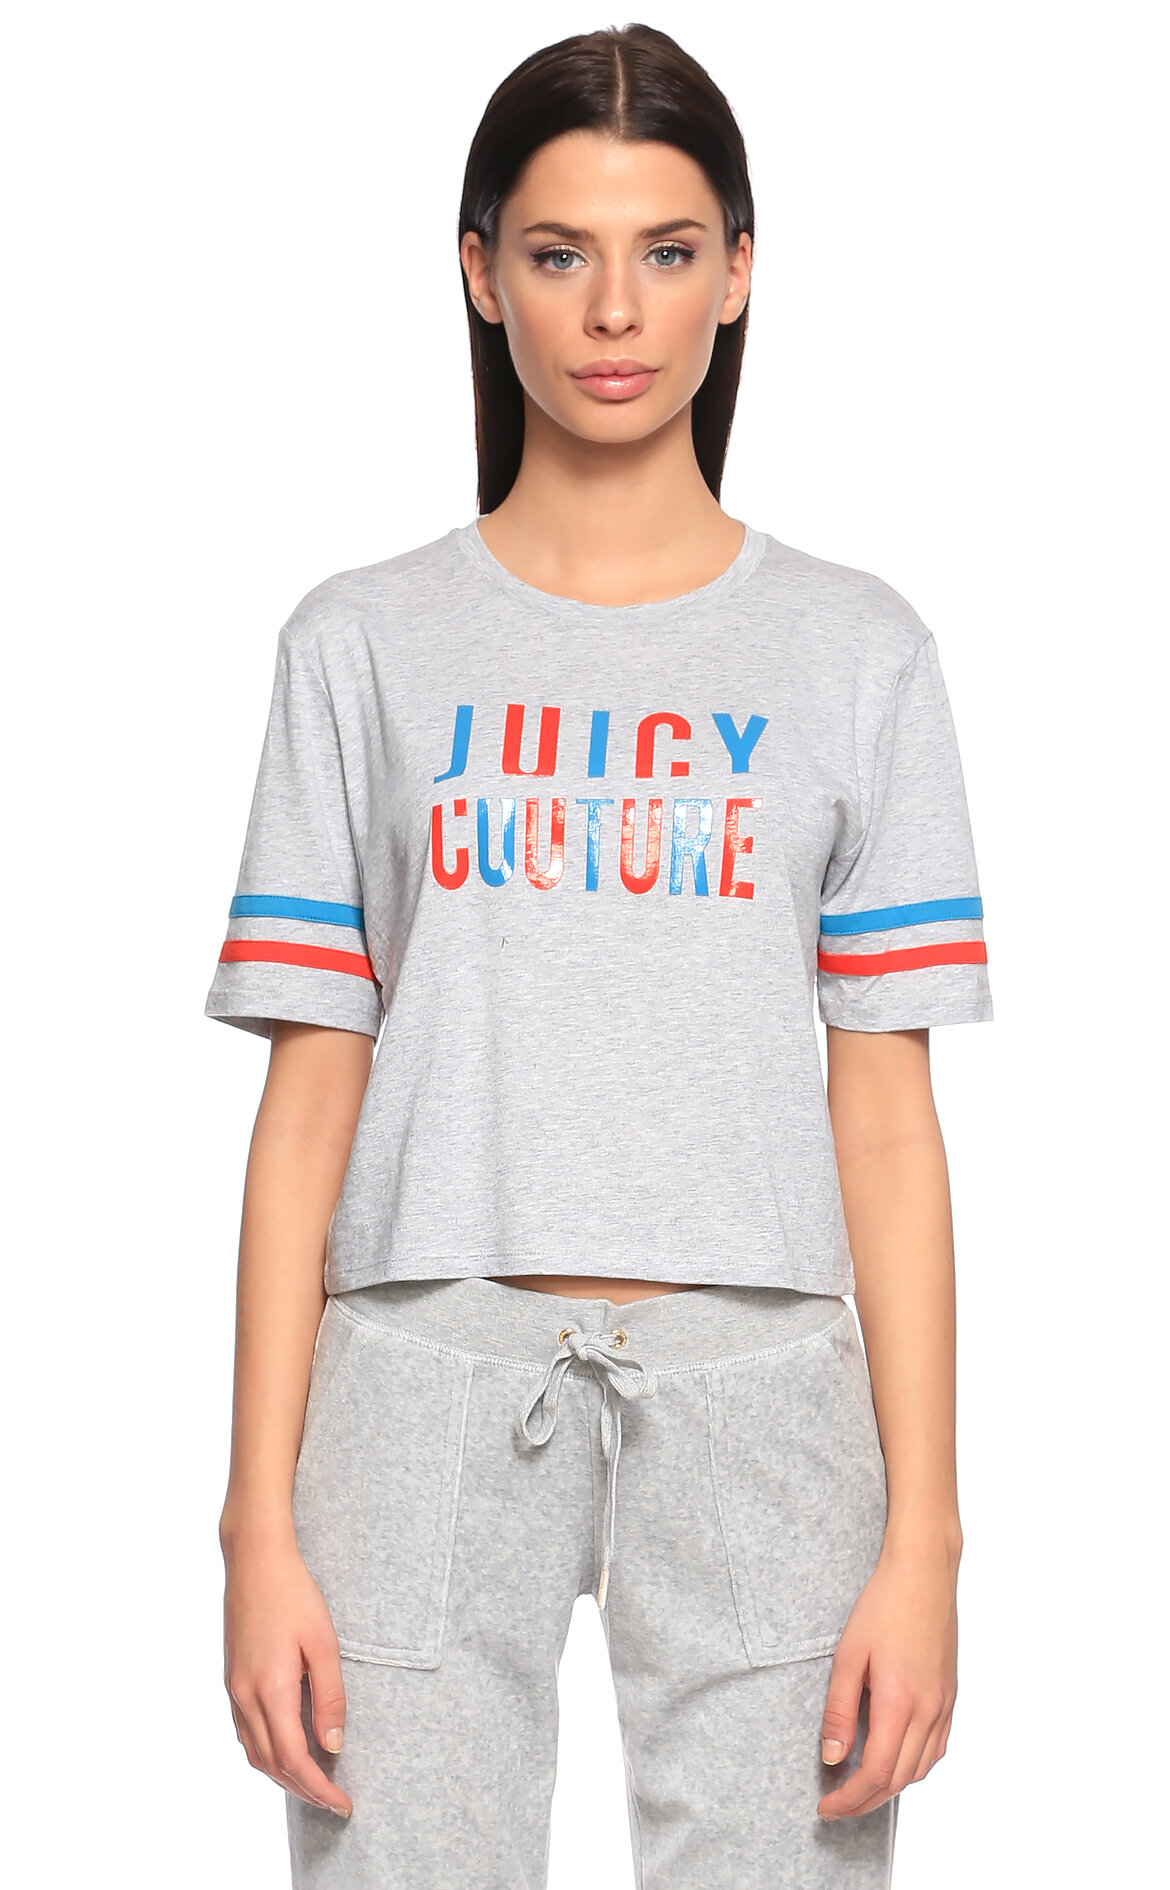 Juicy Couture-Juicy Couture Baskılı Gri T-Shirt